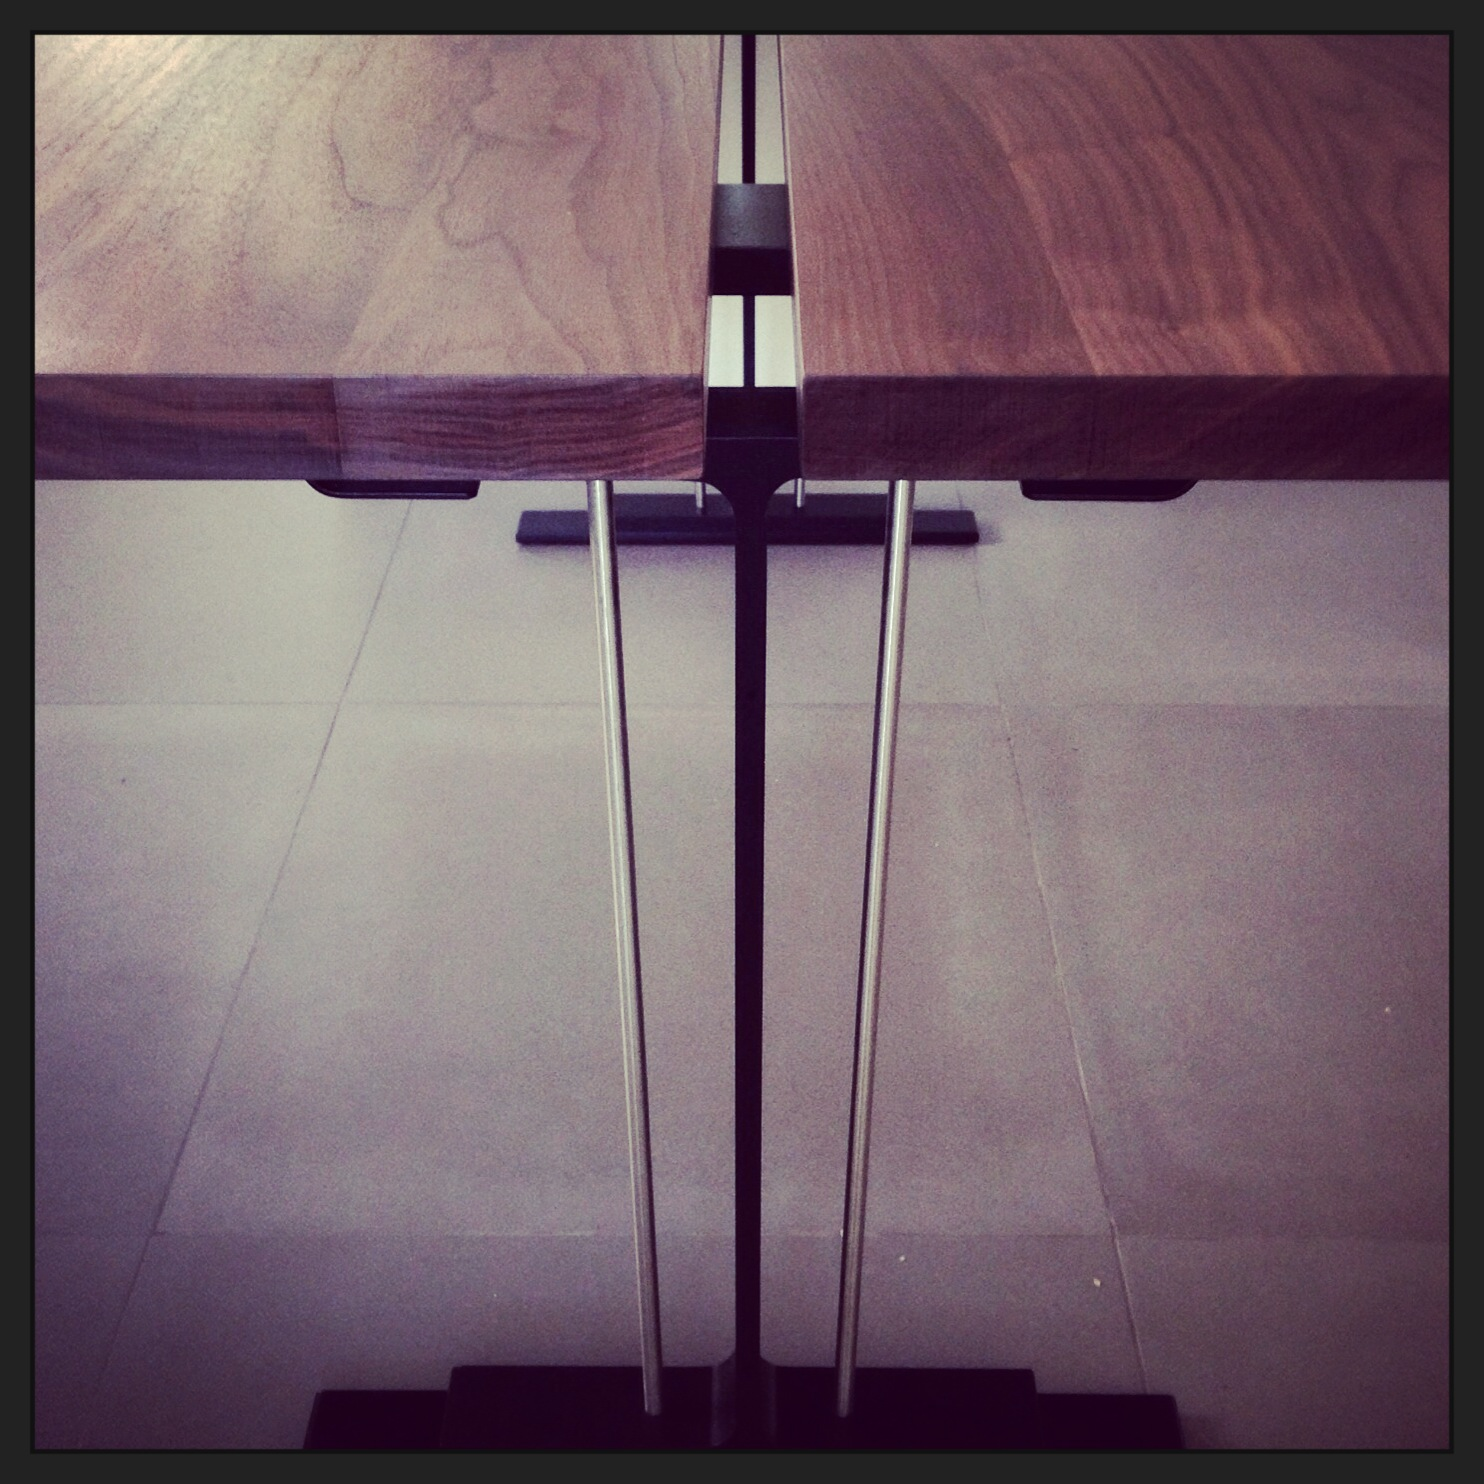 walnut + steel table | interiors:  mission viejo